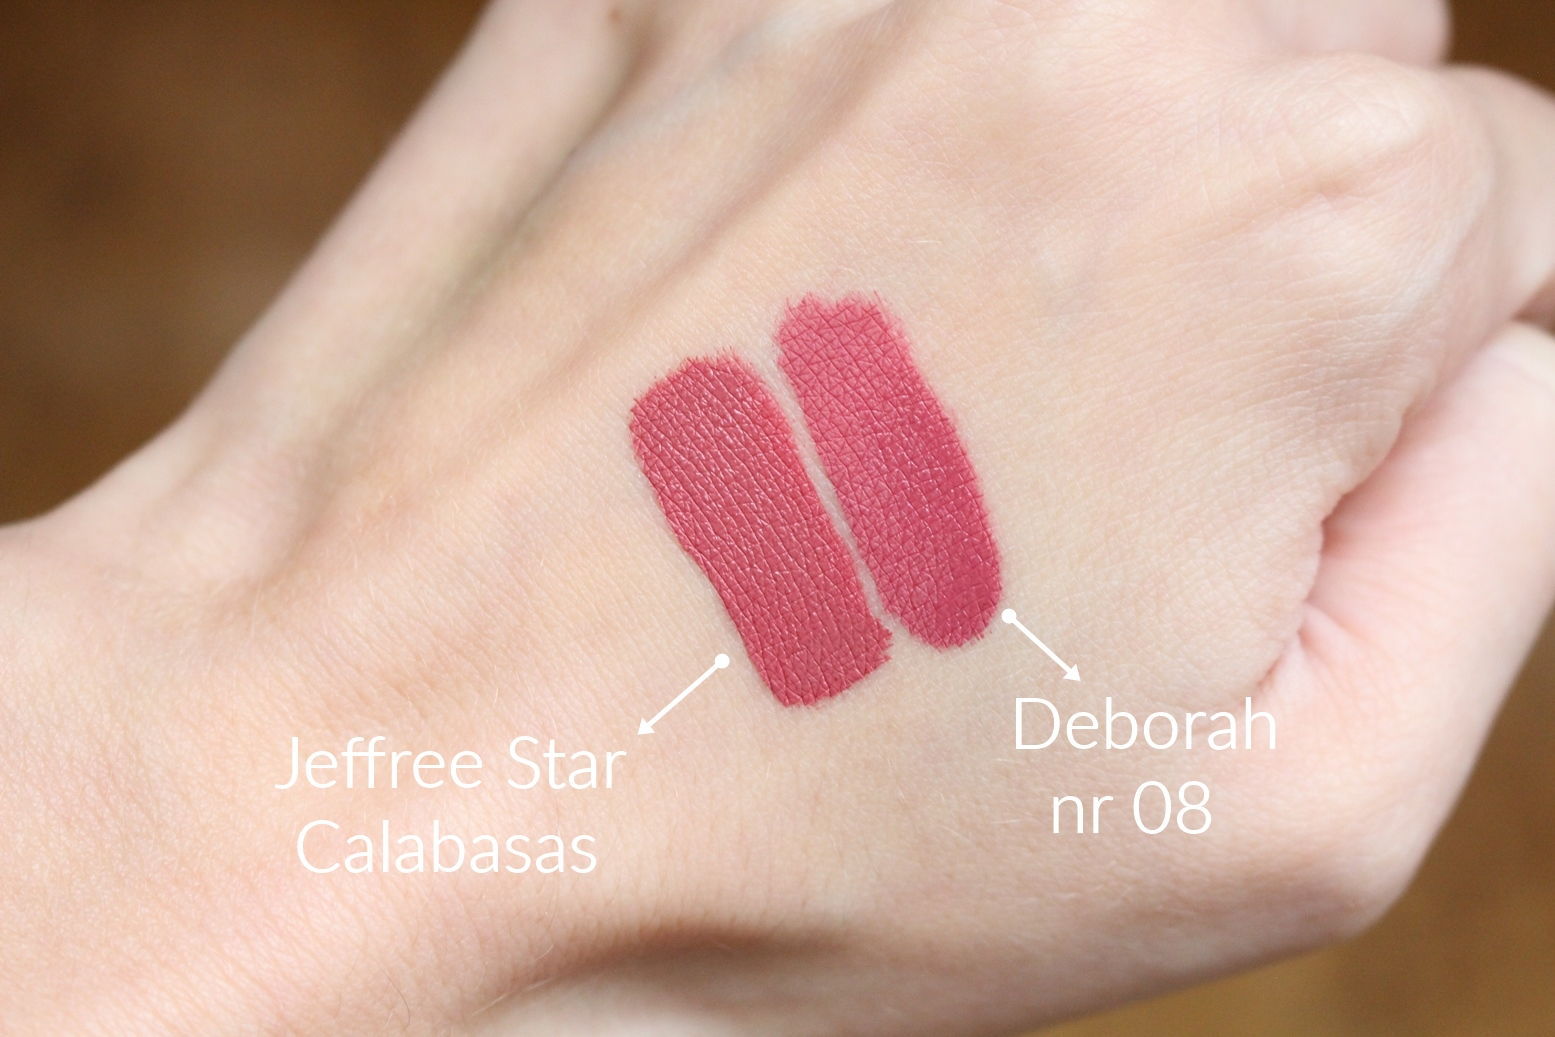 jeffree-star-calabasas-deborah-velvet-08-swatch